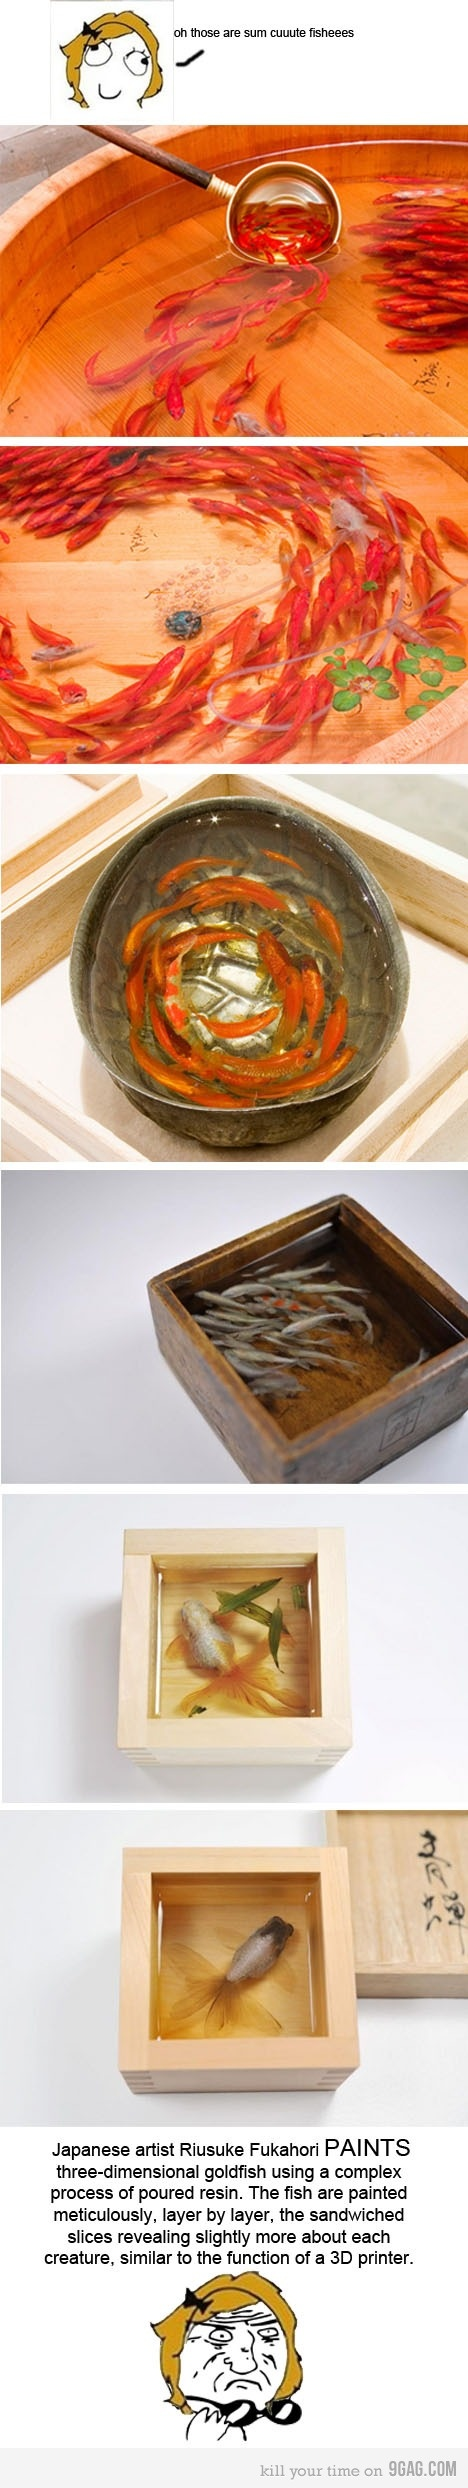 Best Art Resin Painting Images On Pinterest Artists Art - Incredible 3d goldfish drawings using resin